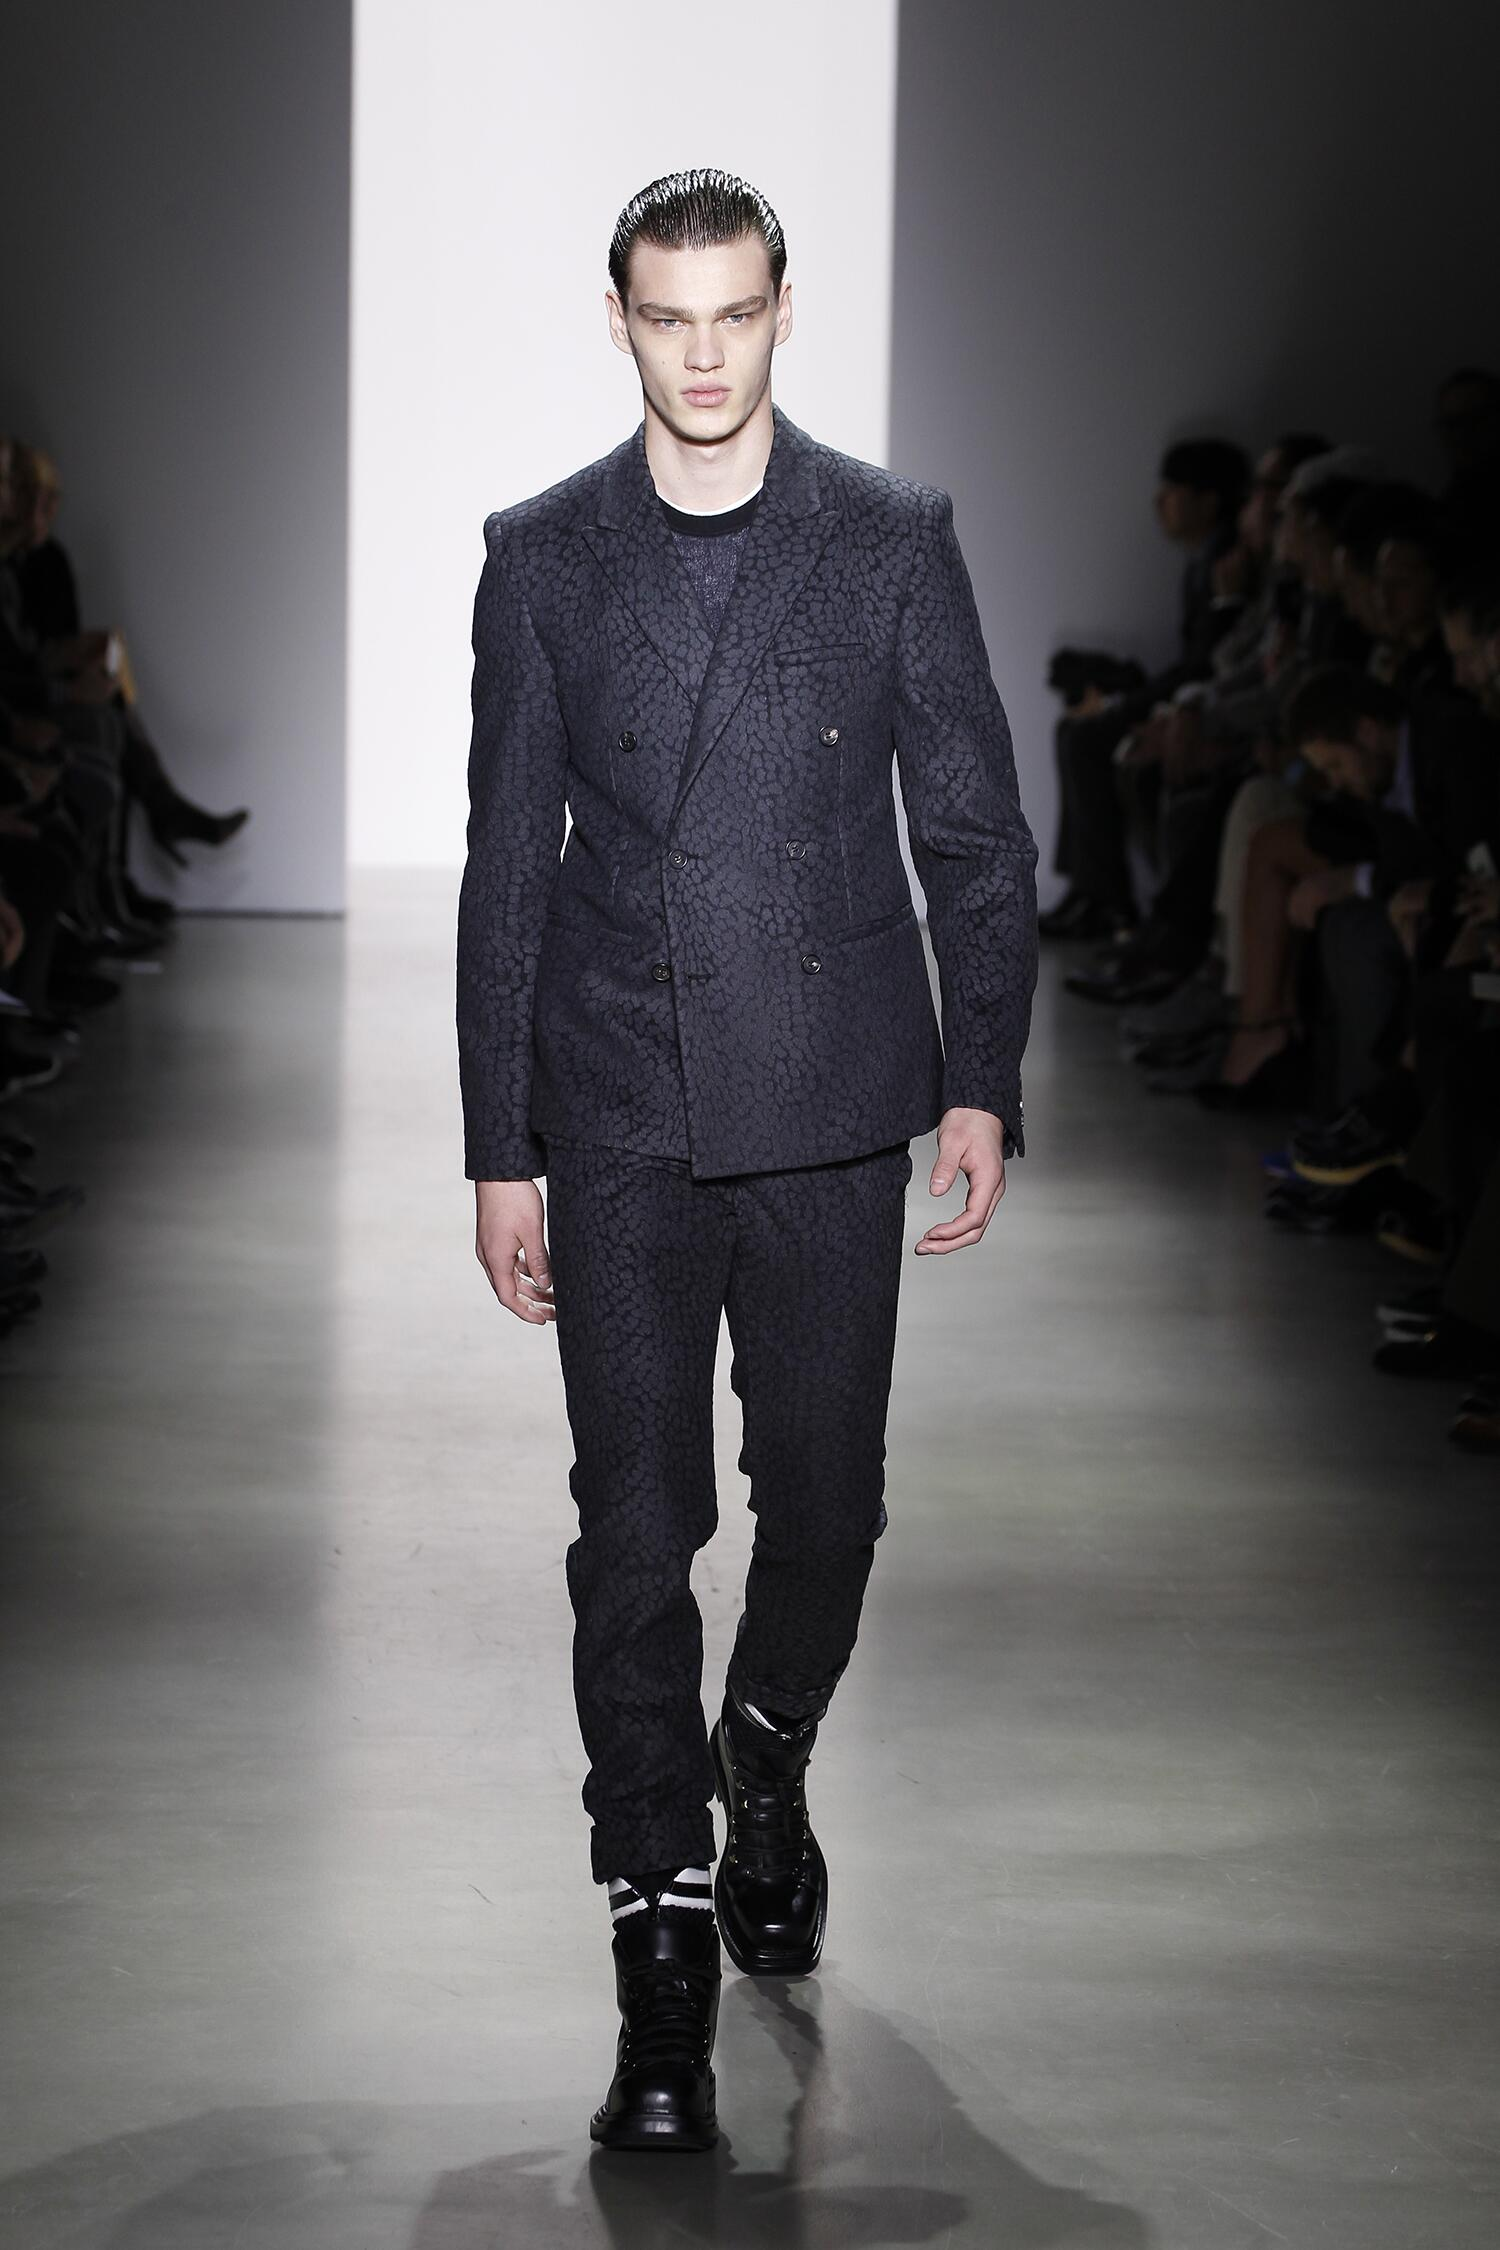 Fall Fashion Man Calvin Klein Collection